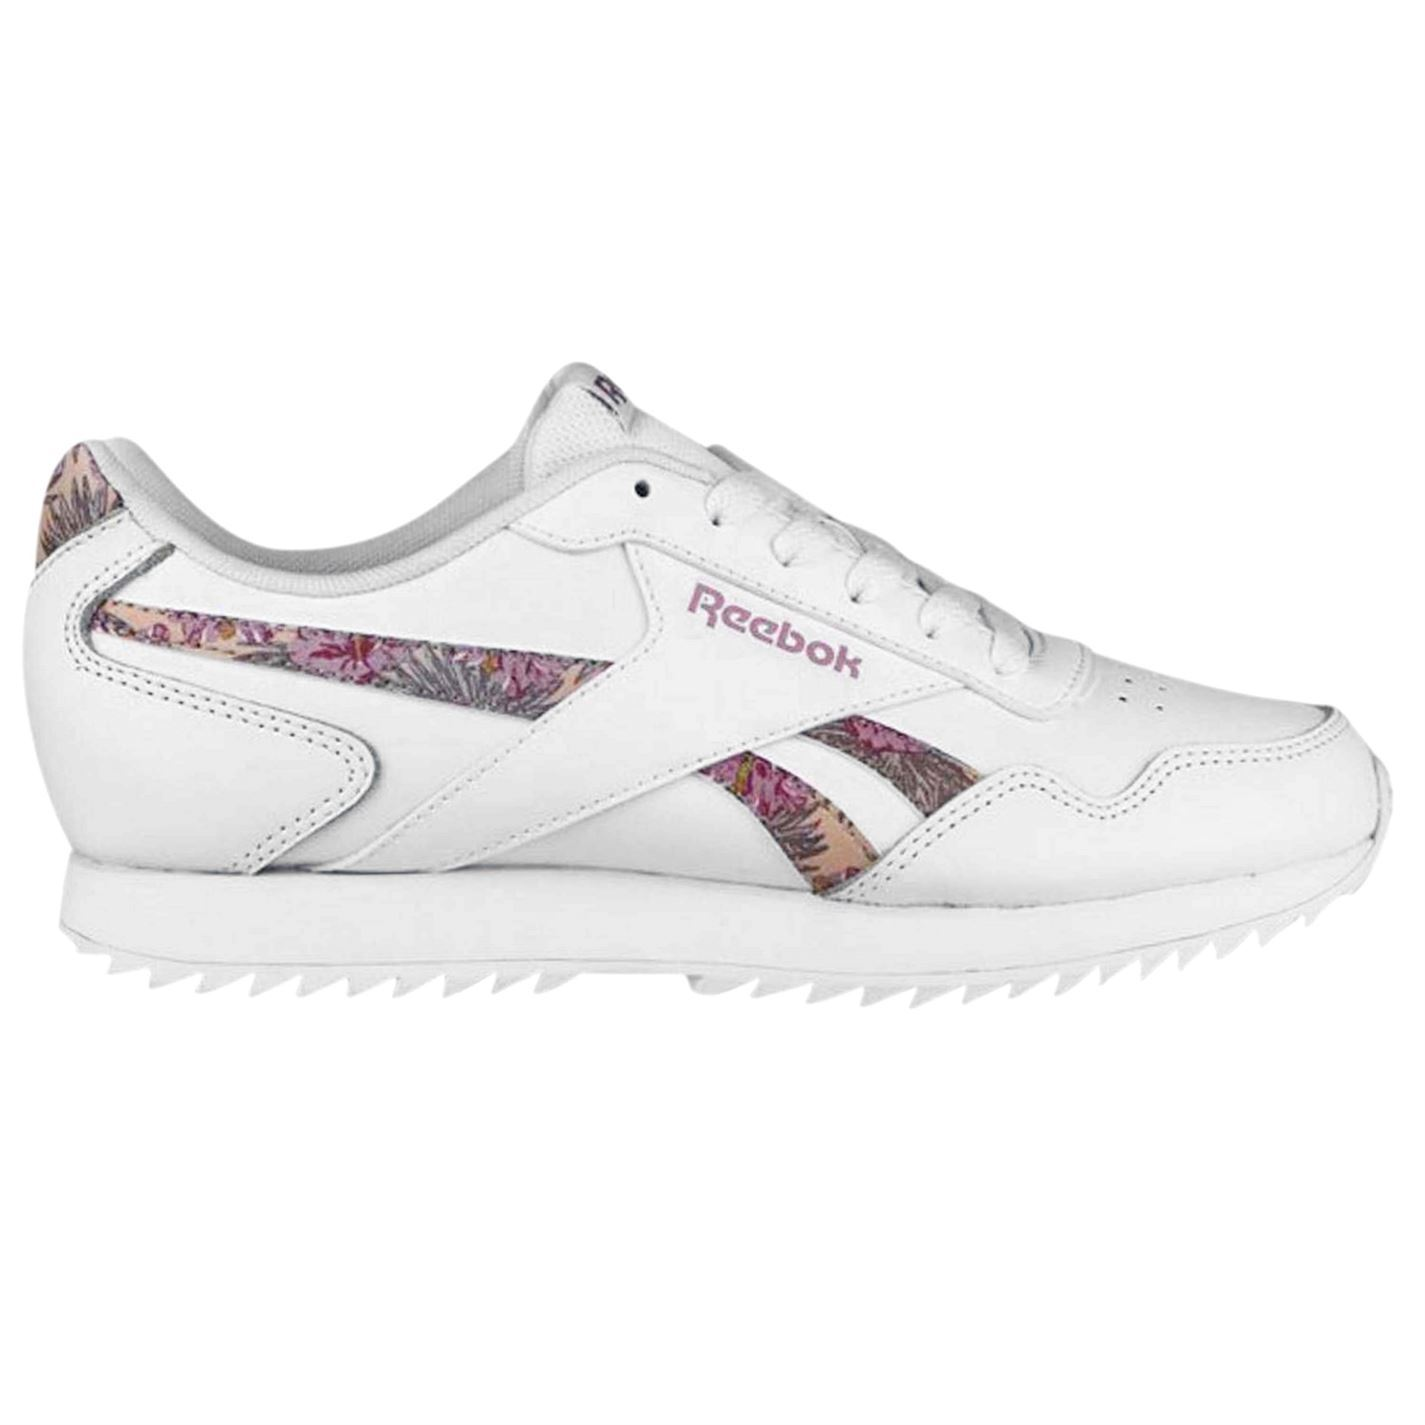 Details about Reebok Royal Glide Ripple Floral Trainers Womens White Athleisure Sneakers Shoes